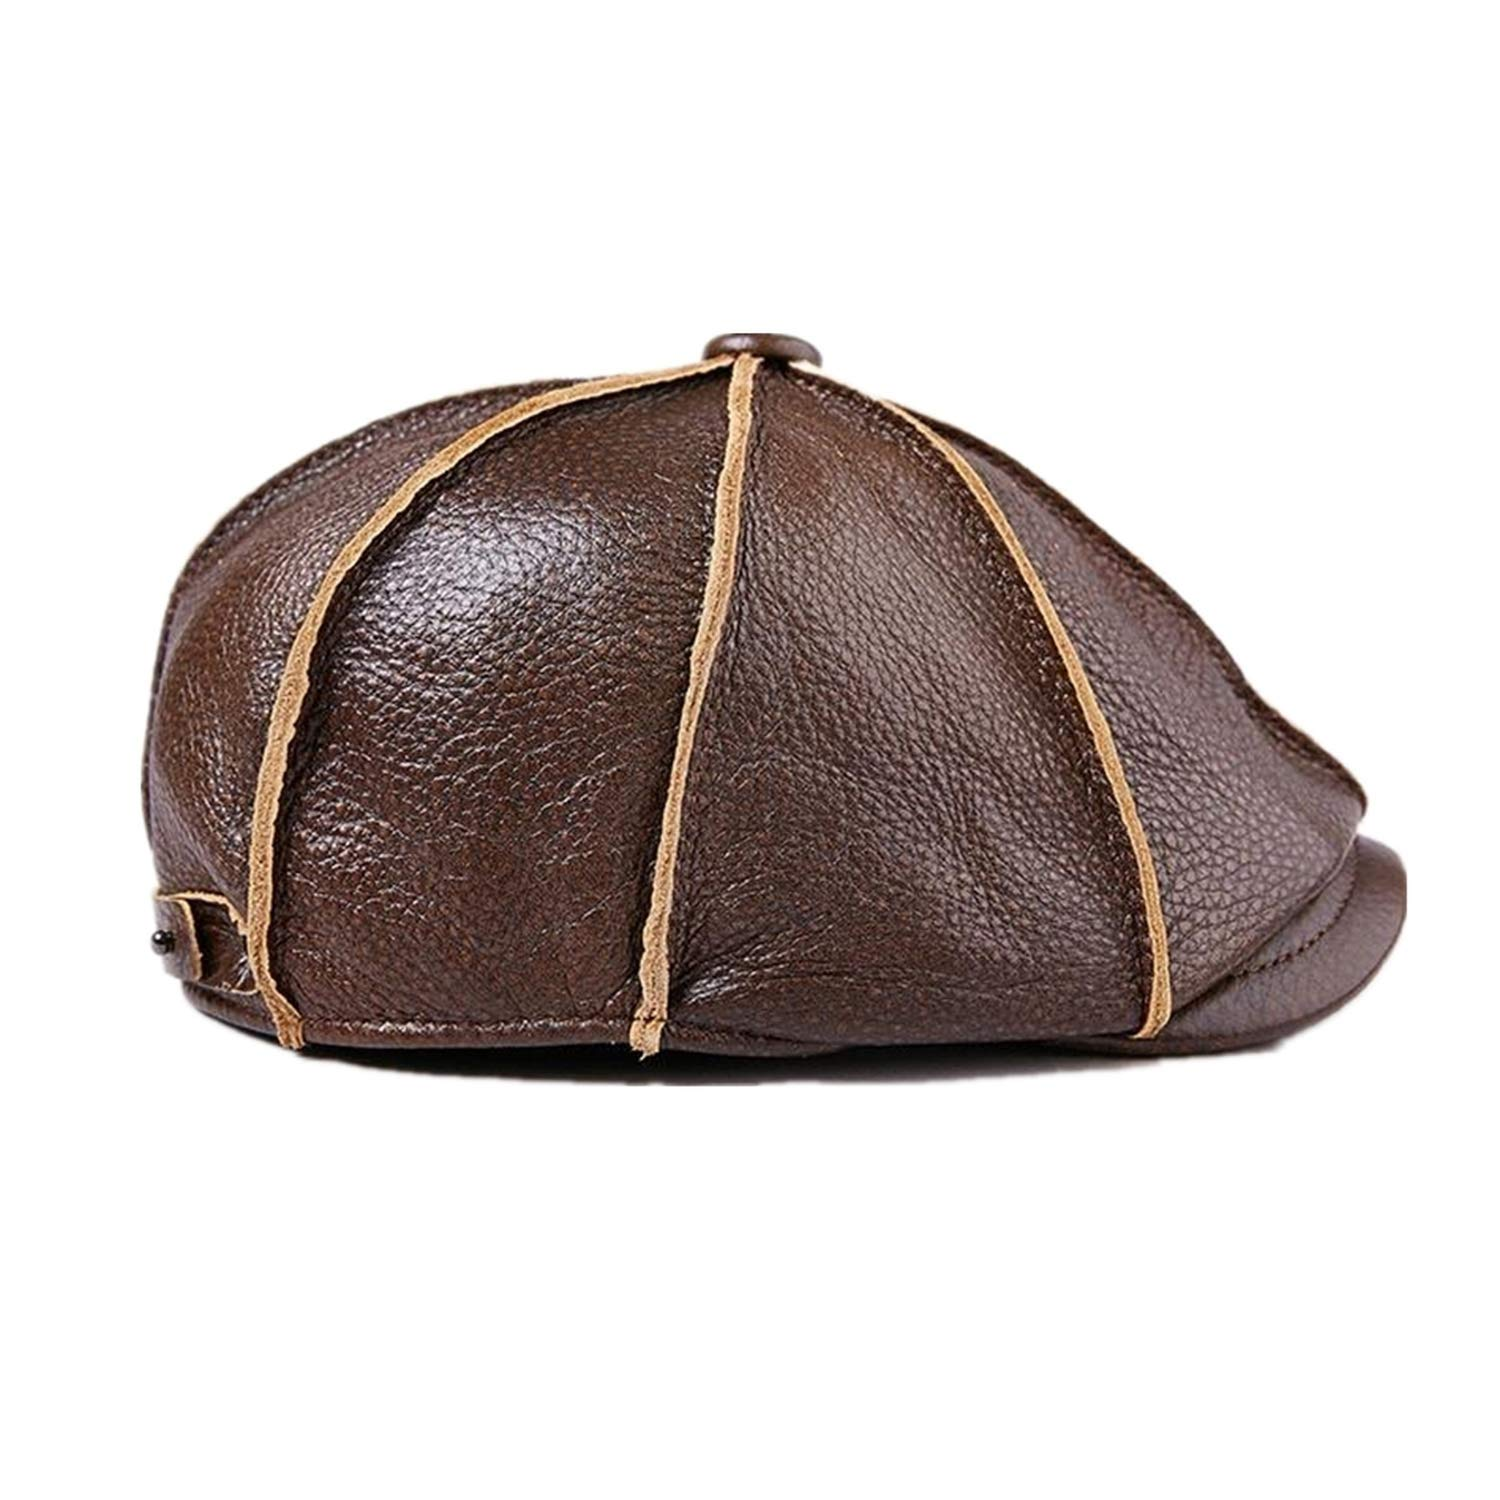 Newsboy Caps Real Cow Leather Women Brown Cap Ivy Duckbill Hats Spring Flat Hats,Yellow Brown,S(55-56 cm)